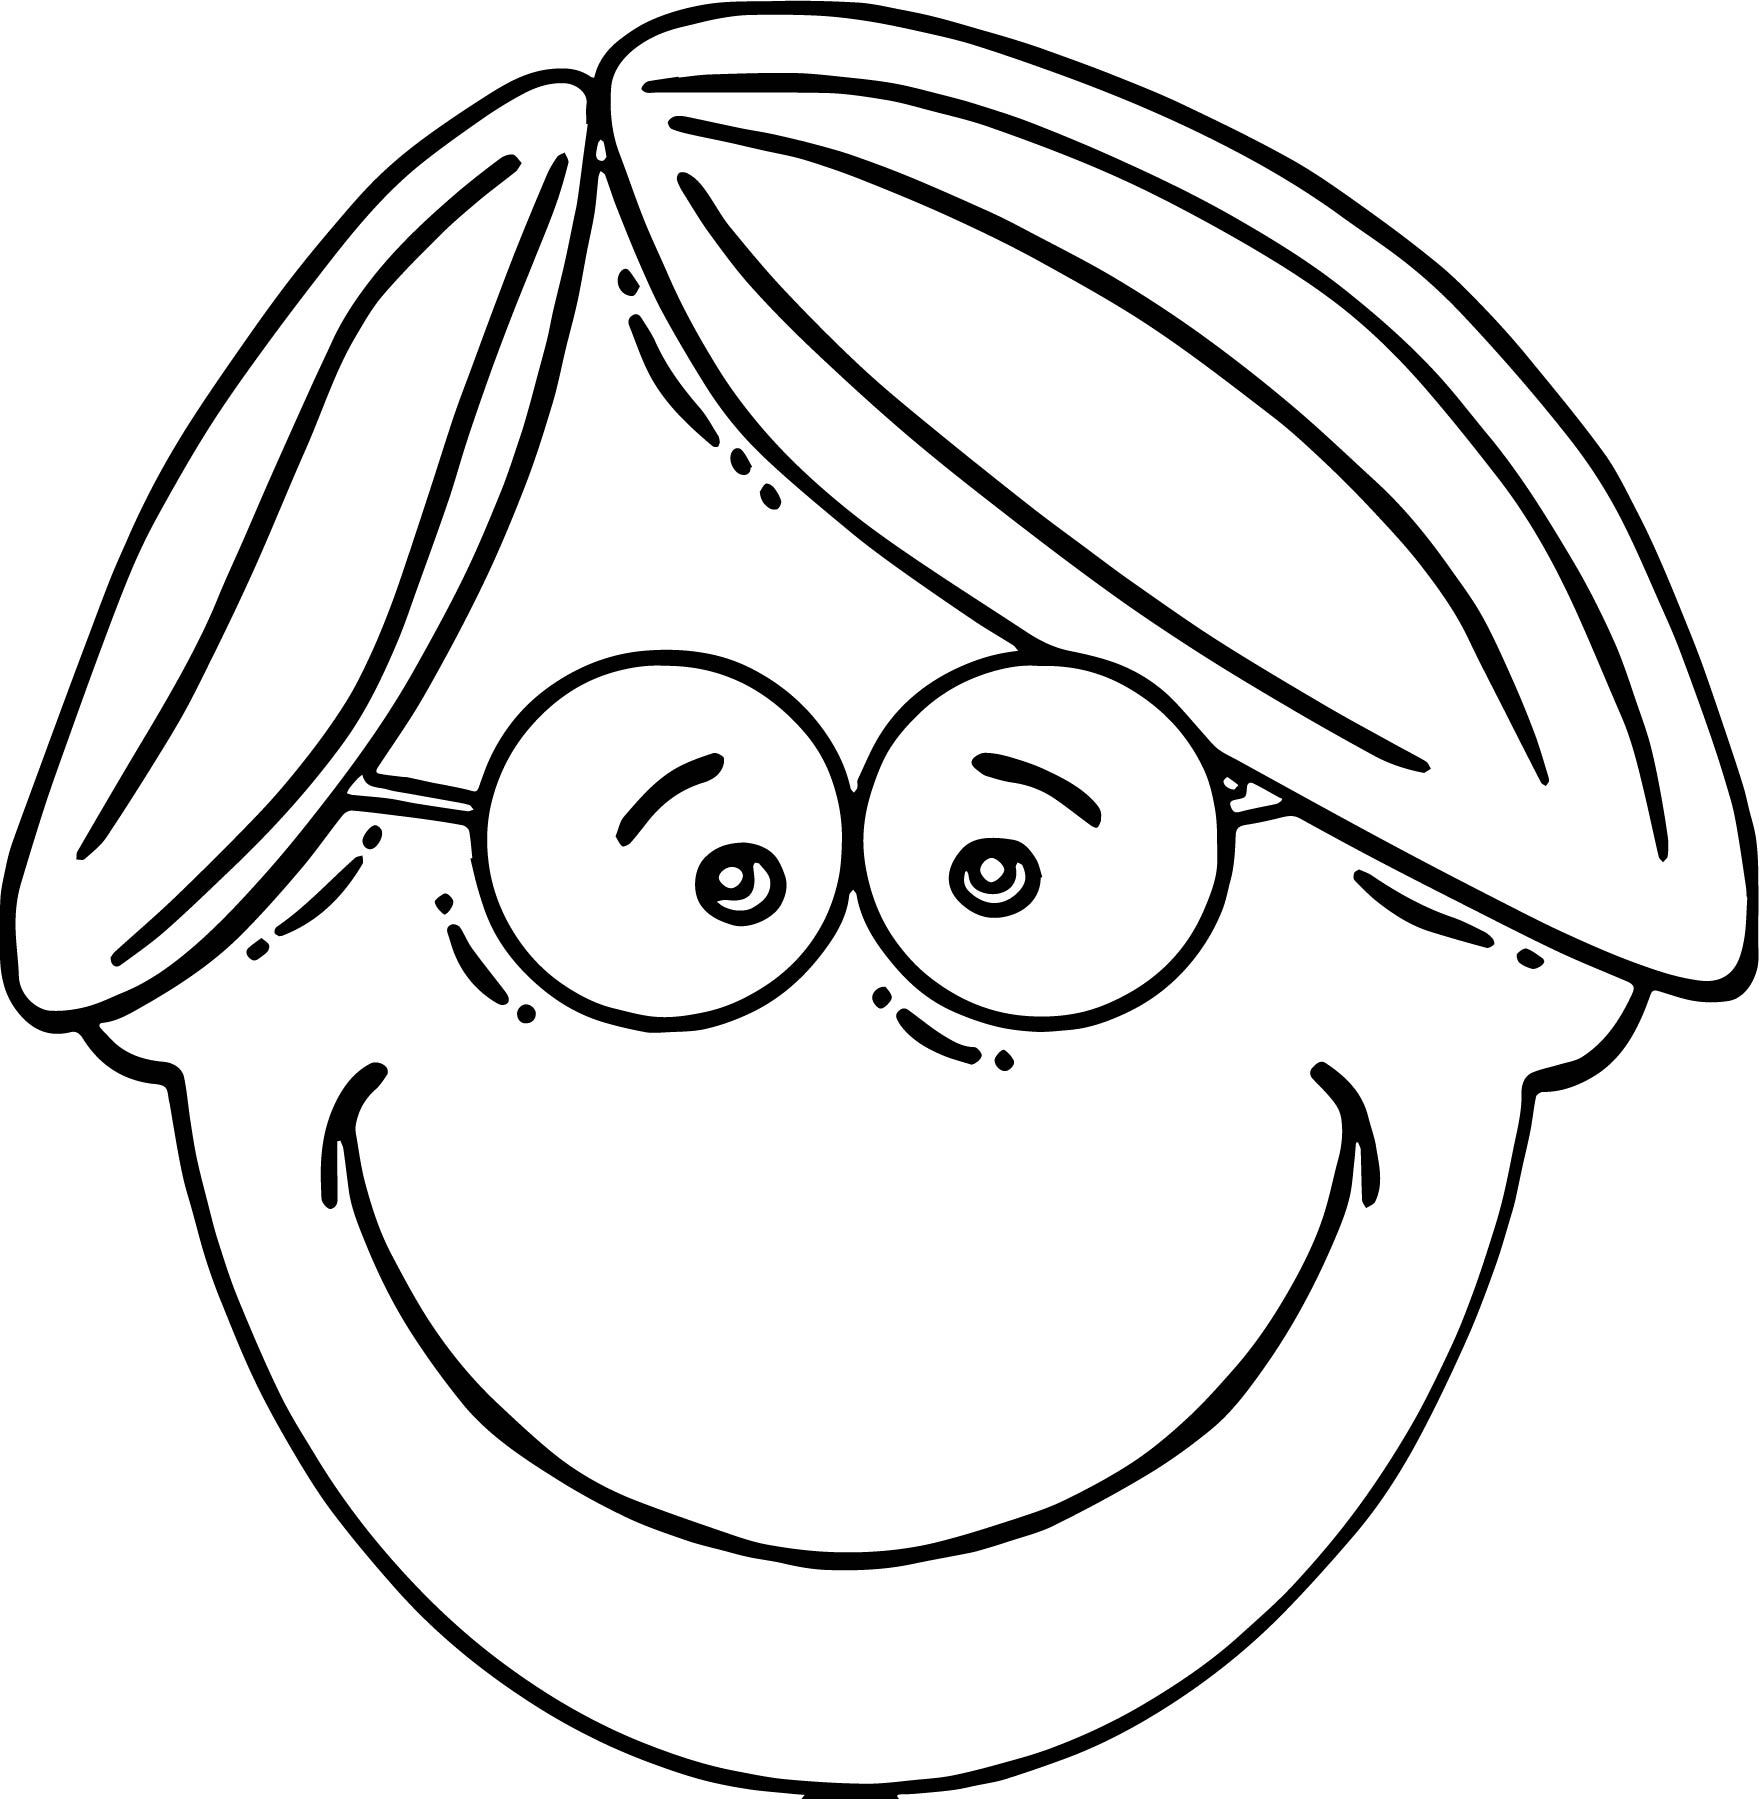 Face Ledger Boy Face Cartoon Clip Art  Coloring Page (2)